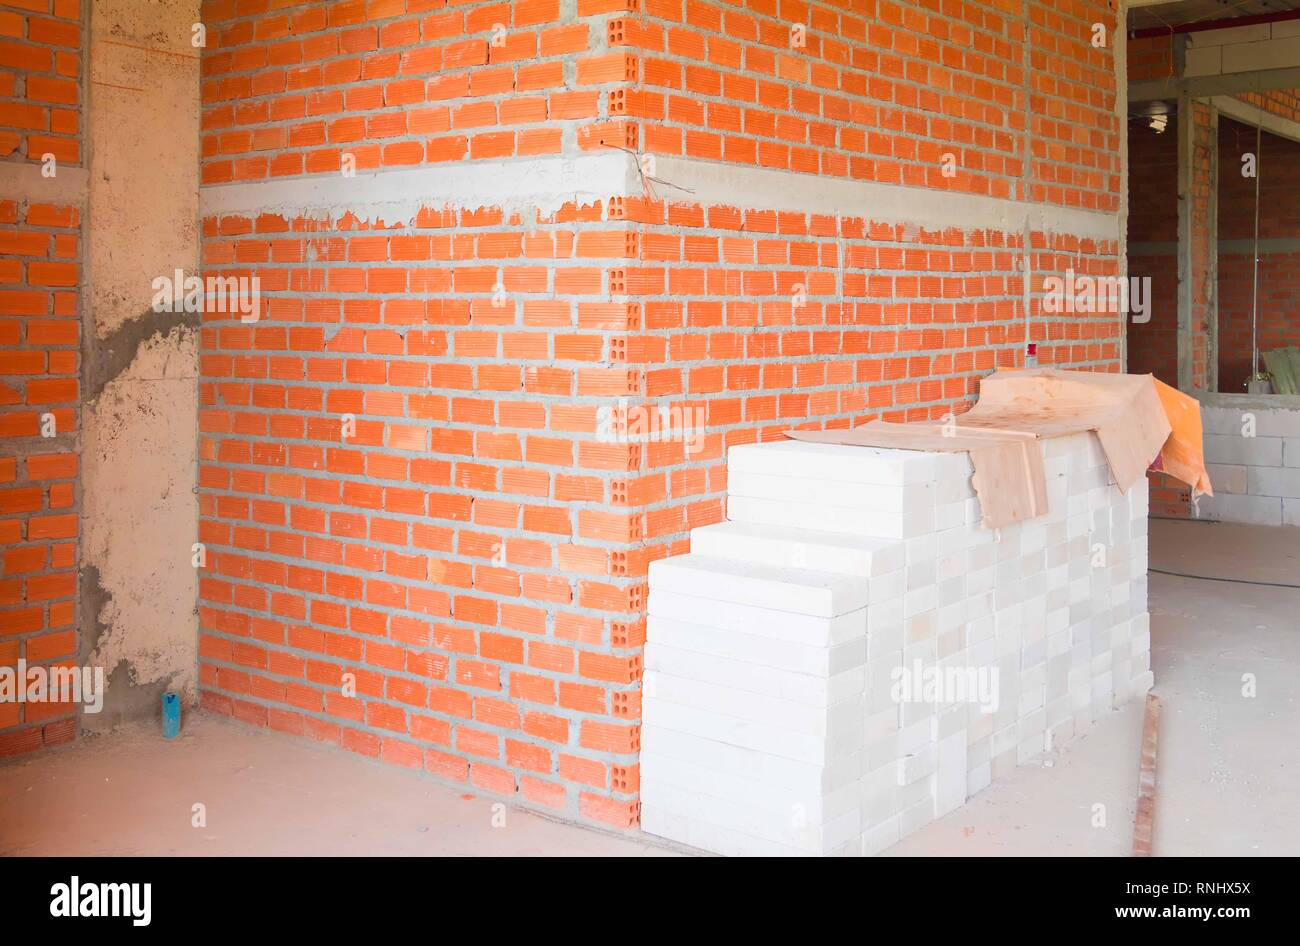 Adding Brick Wall Interior Wall Made Brick Construction Site Interior Room In Building With